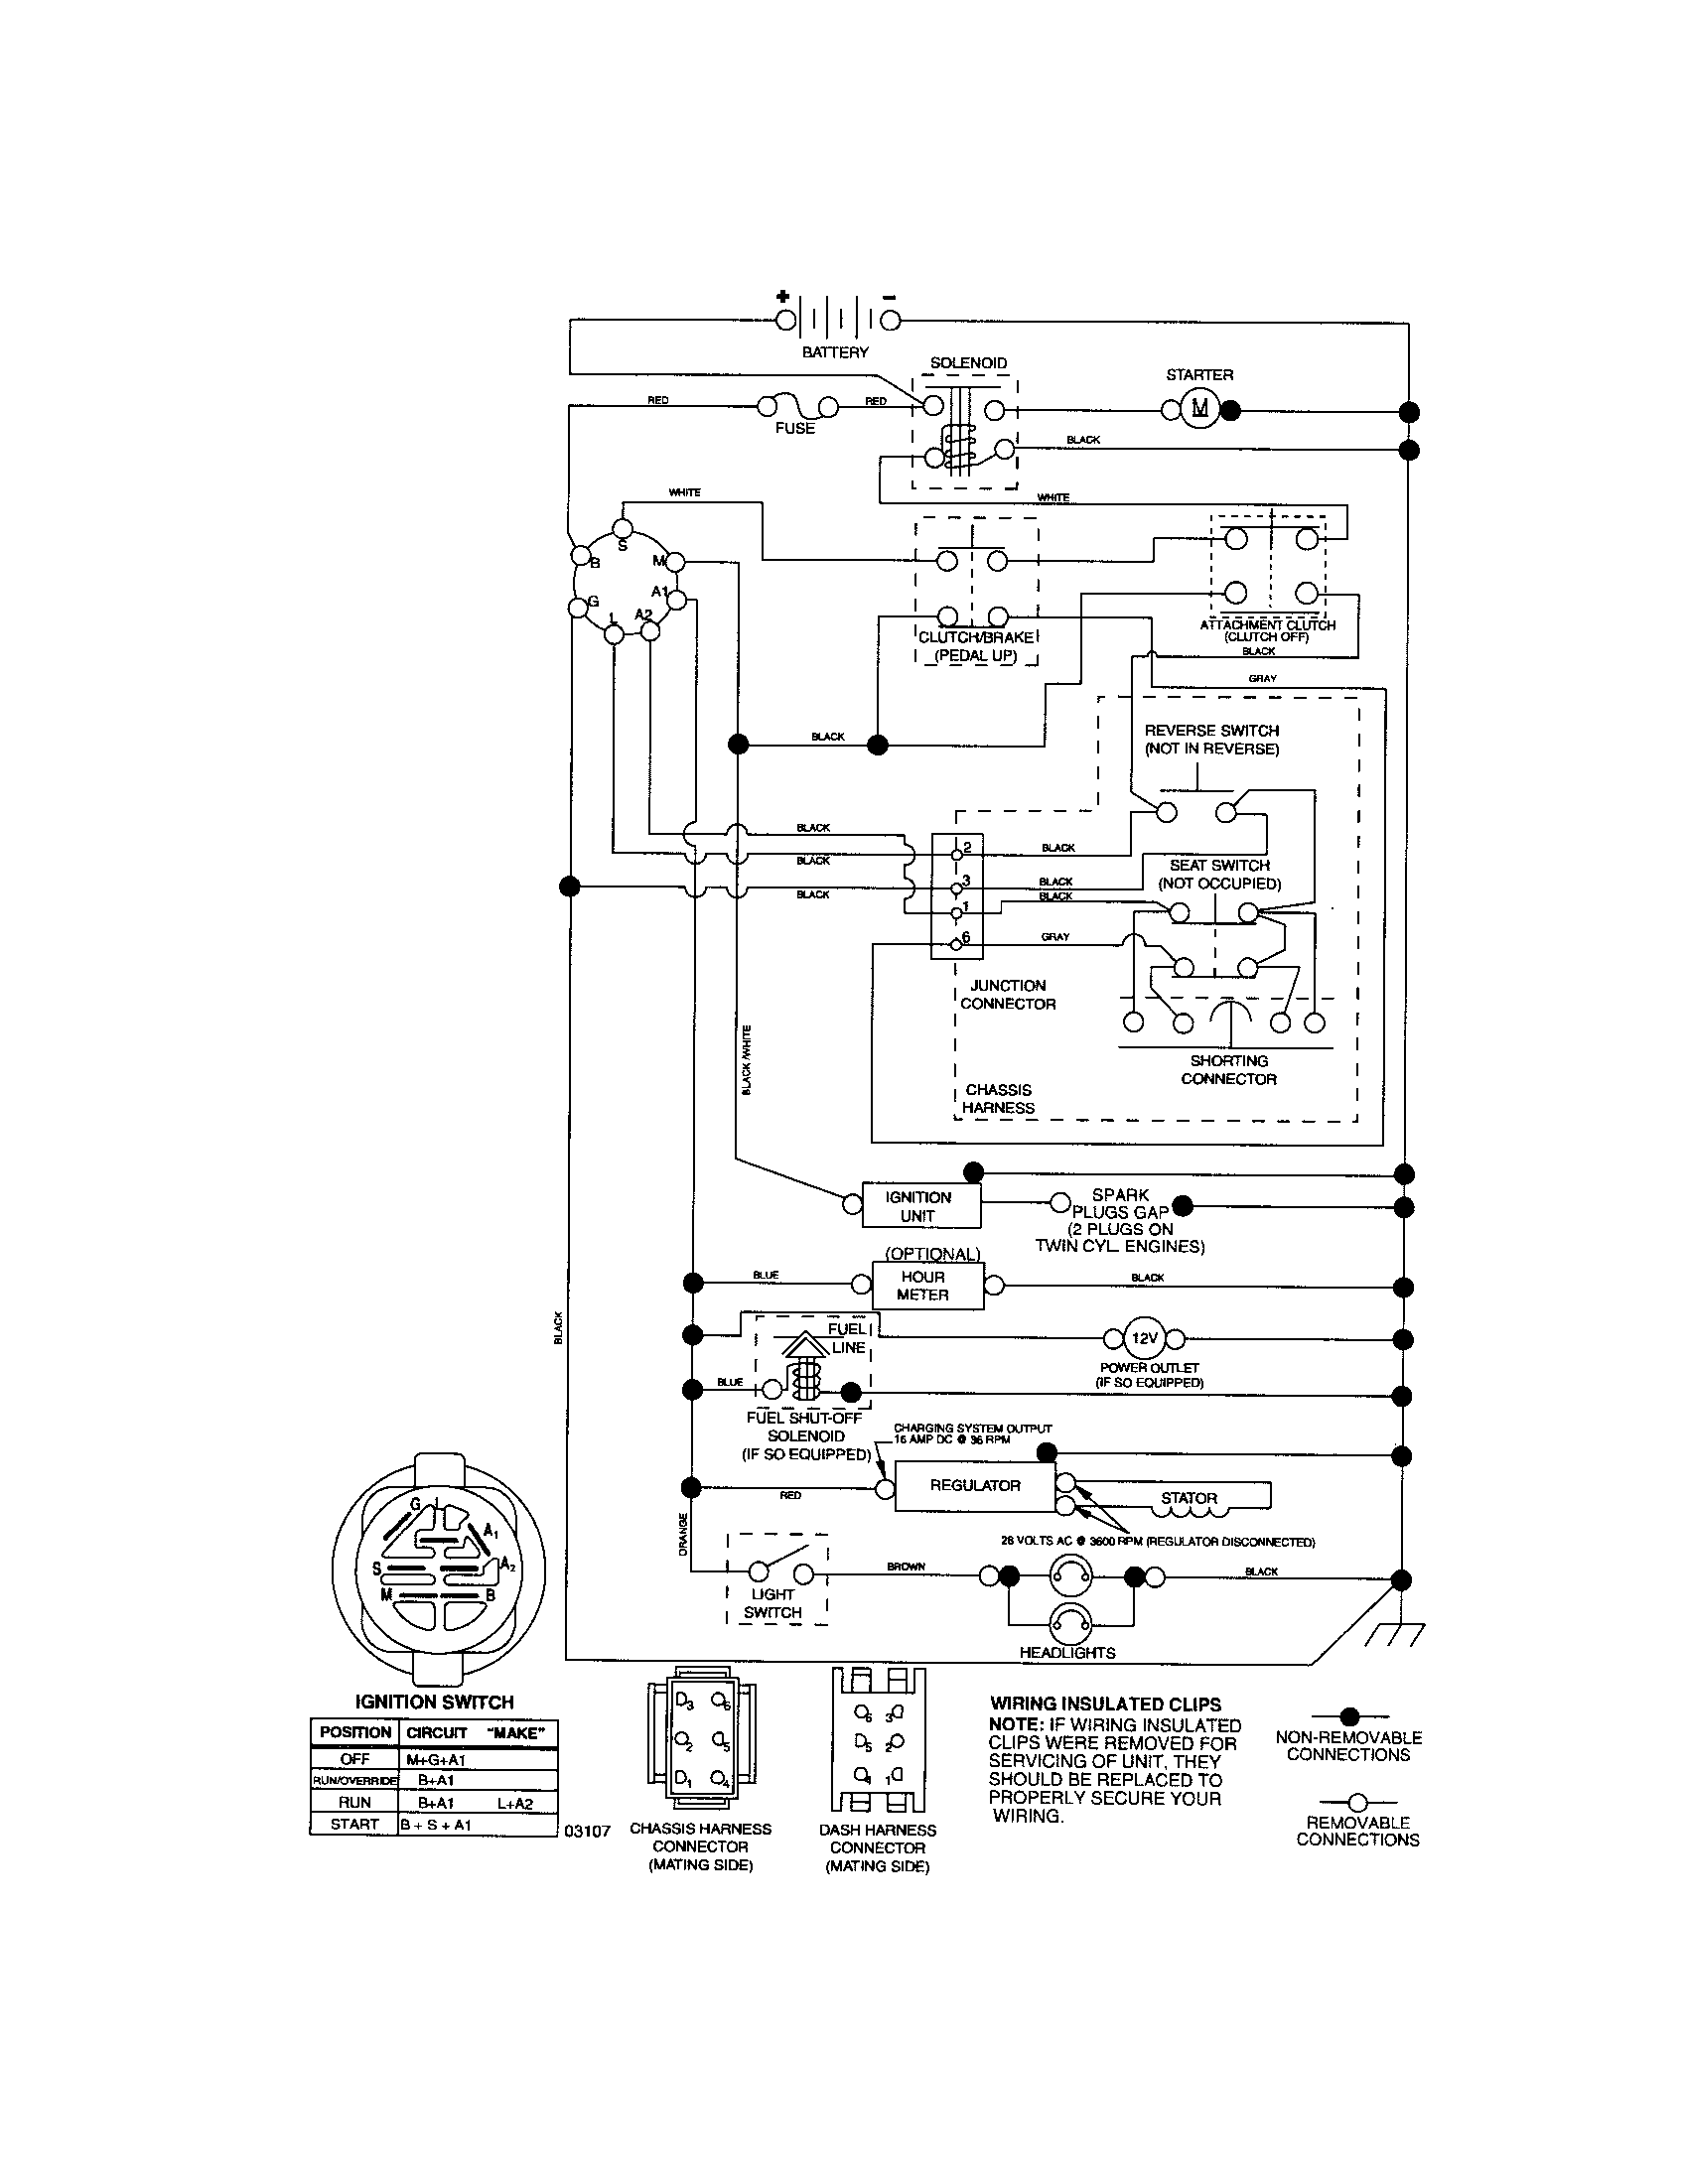 6af5f1447fd13c8443376822ddc1e105 craftsman riding mower electrical diagram wiring diagram craftsman riding mower wiring schematic at eliteediting.co